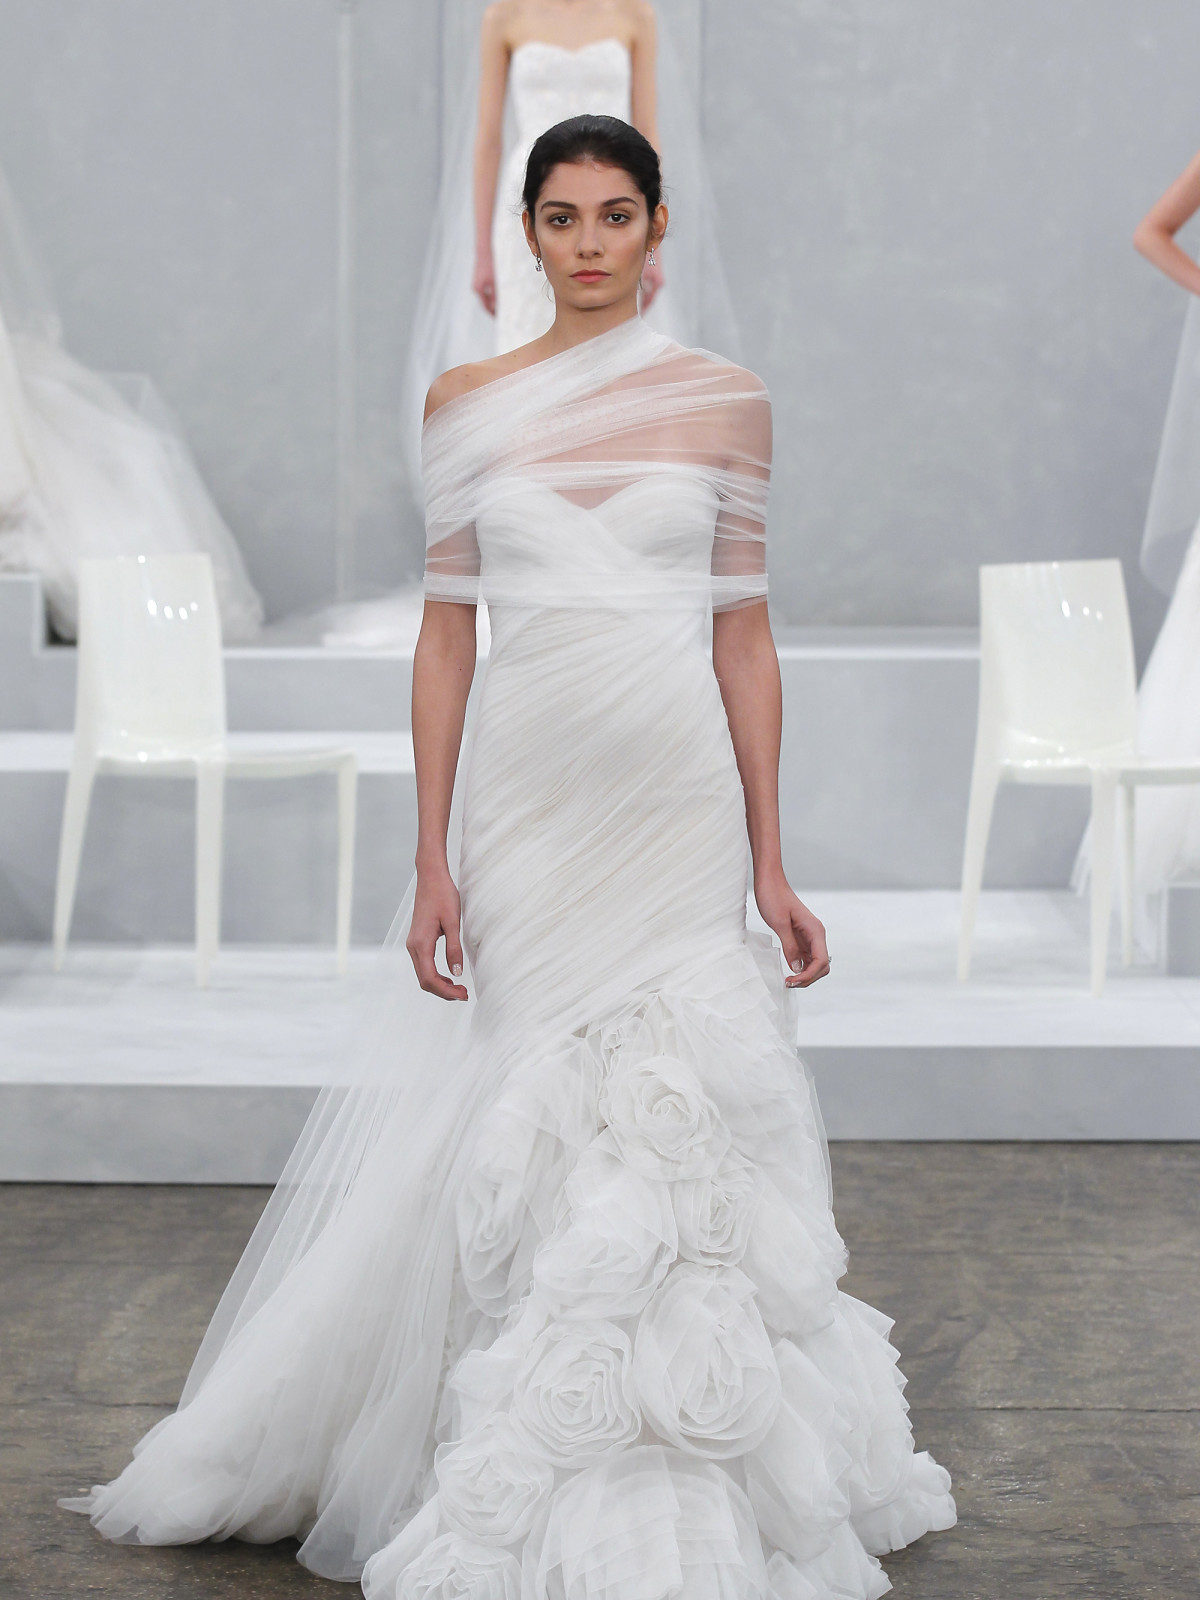 Top Wedding Gown Trends How To Find The Perfect Look For The Big